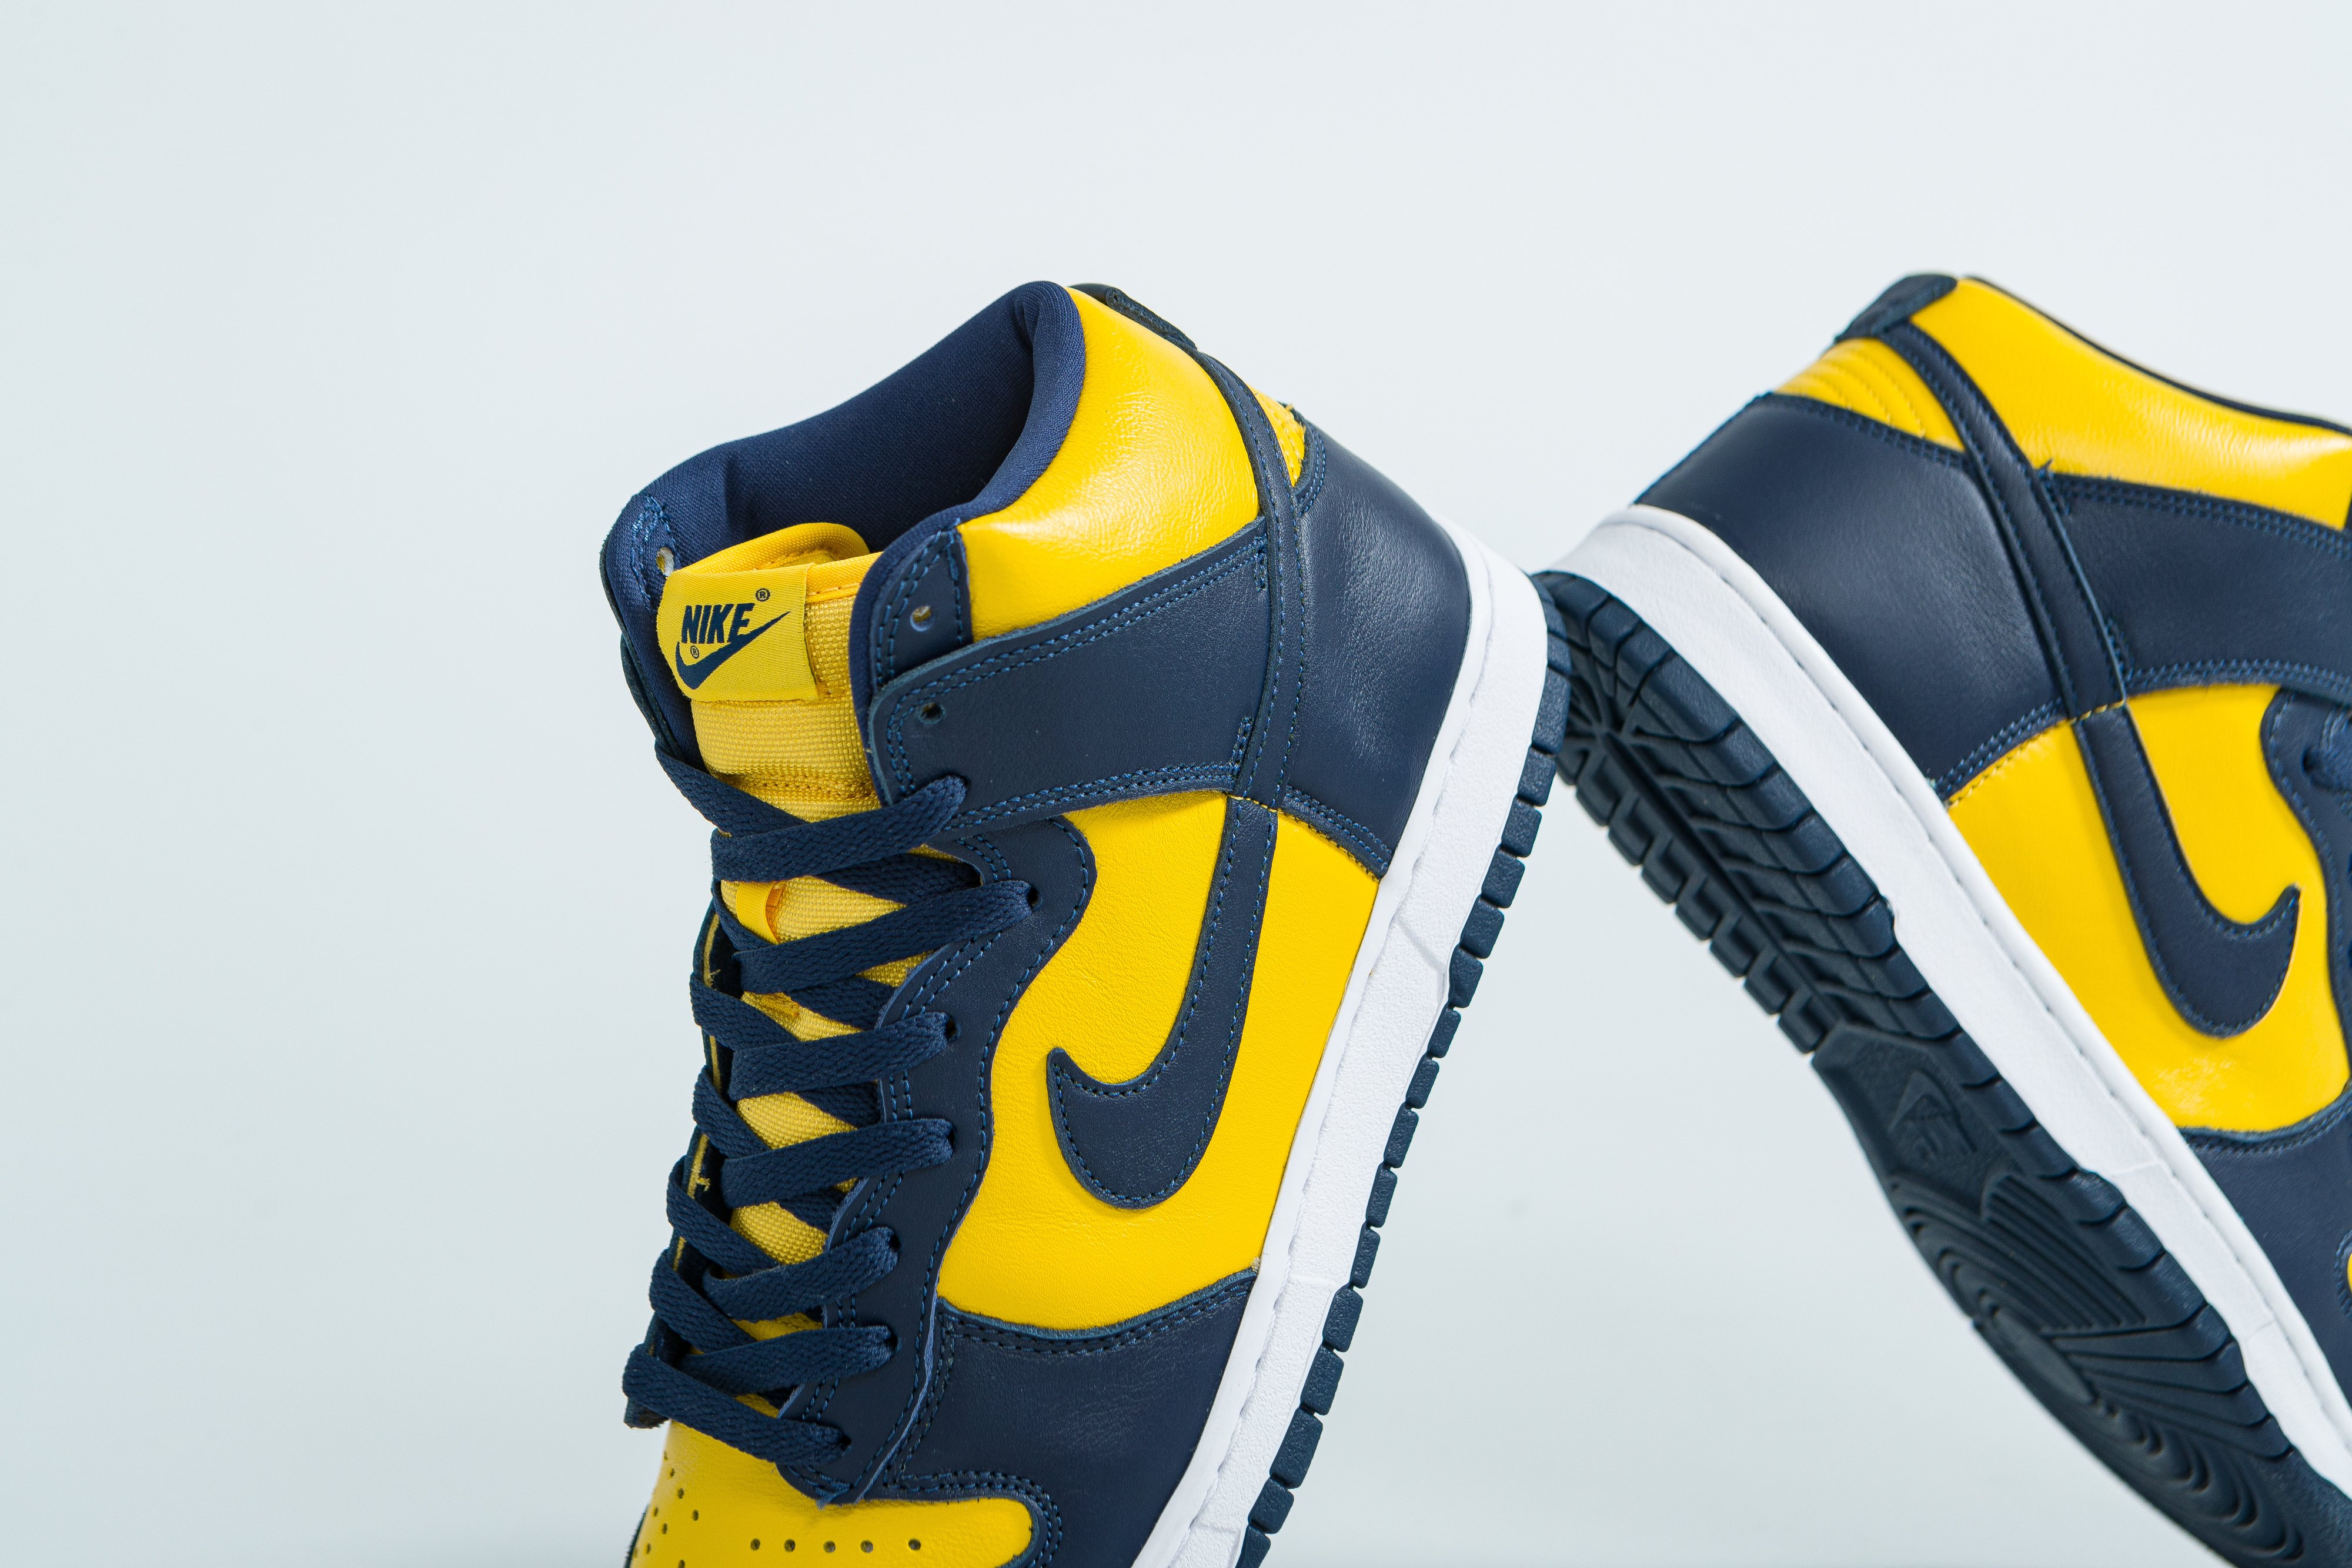 Up There Launches - Nike Dunk High SP - Varsity Maize/Midnight Navy 'Michigan'